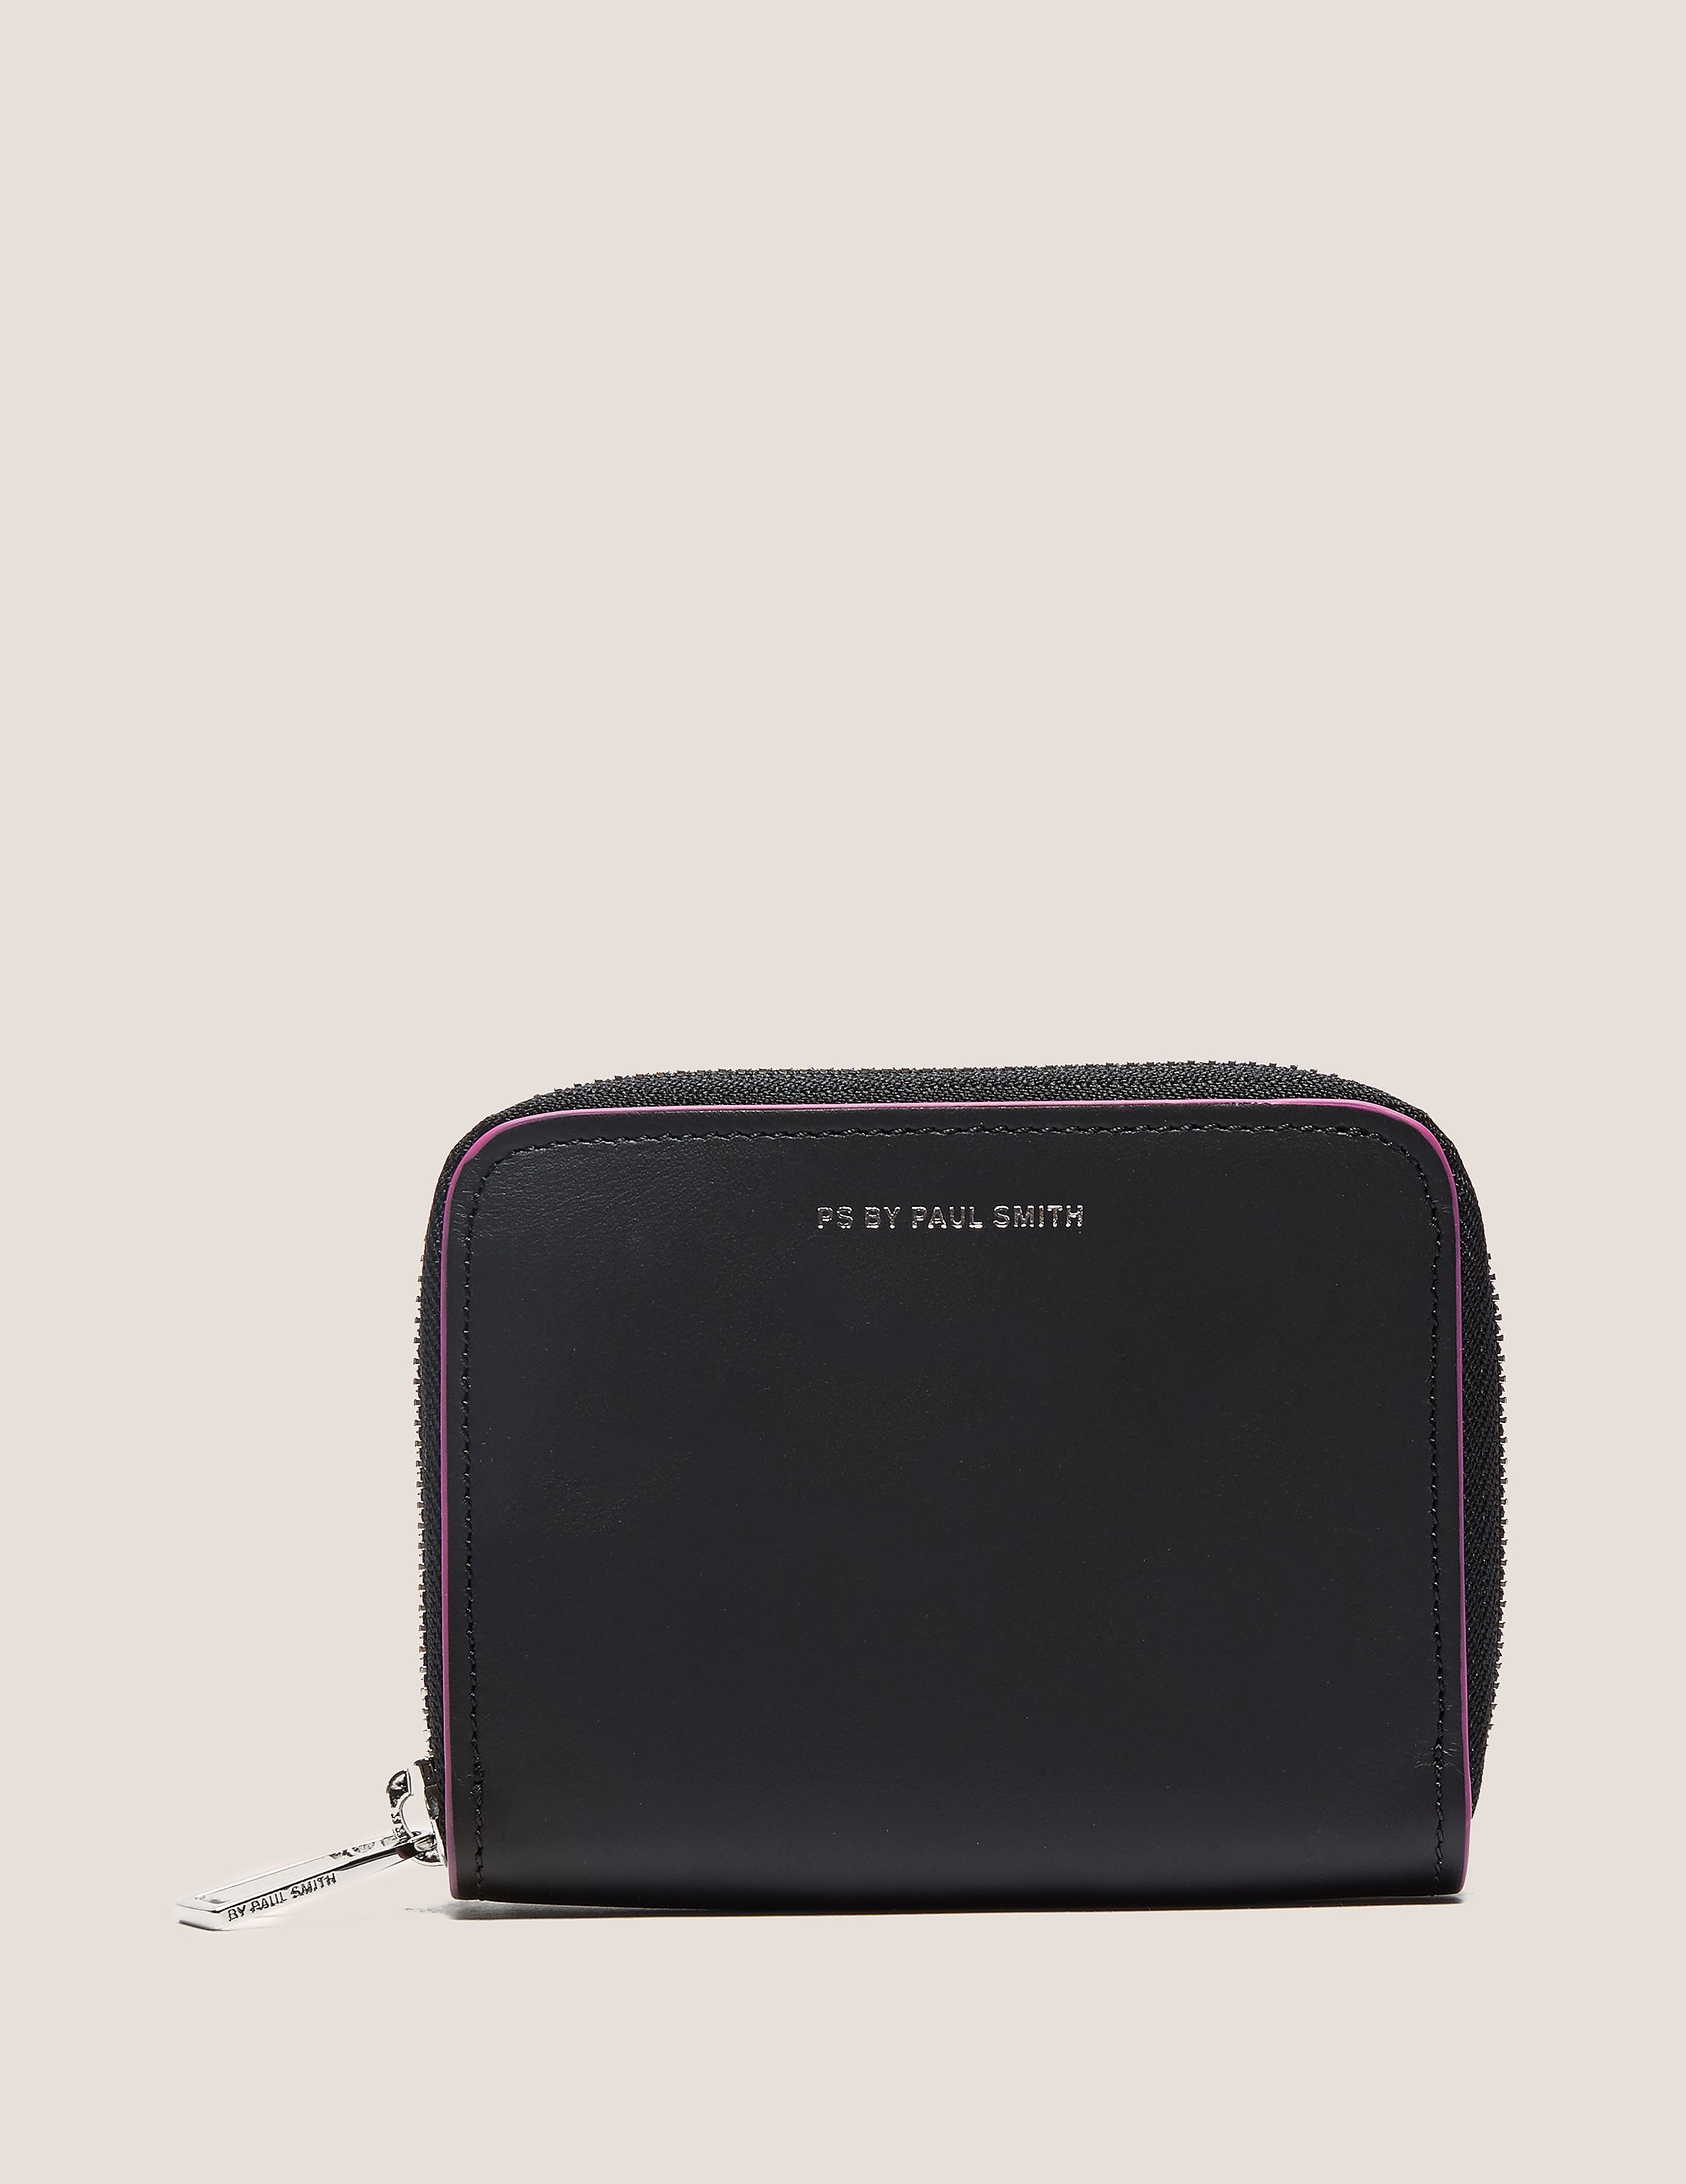 Paul Smith Zip Around Purse